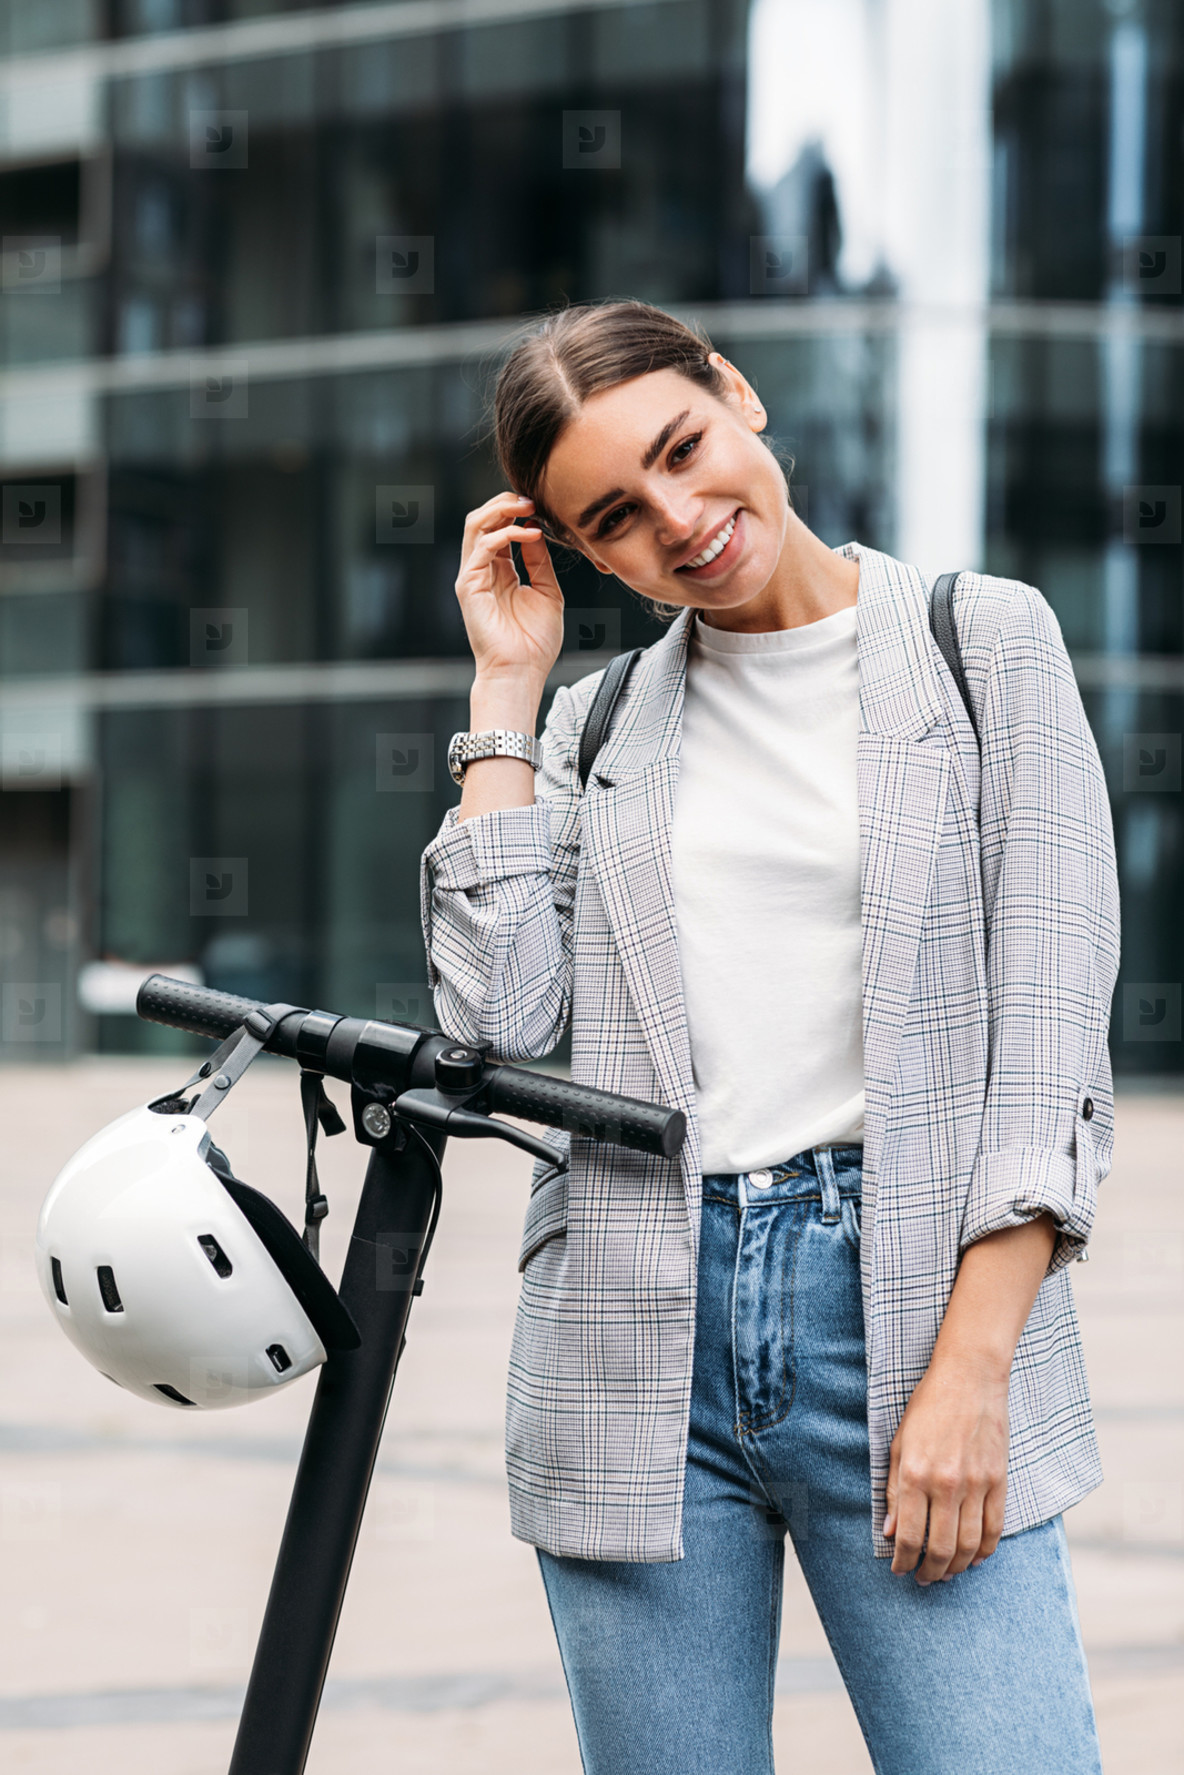 Smiling woman standing outdoors with electric scooter looking at camera